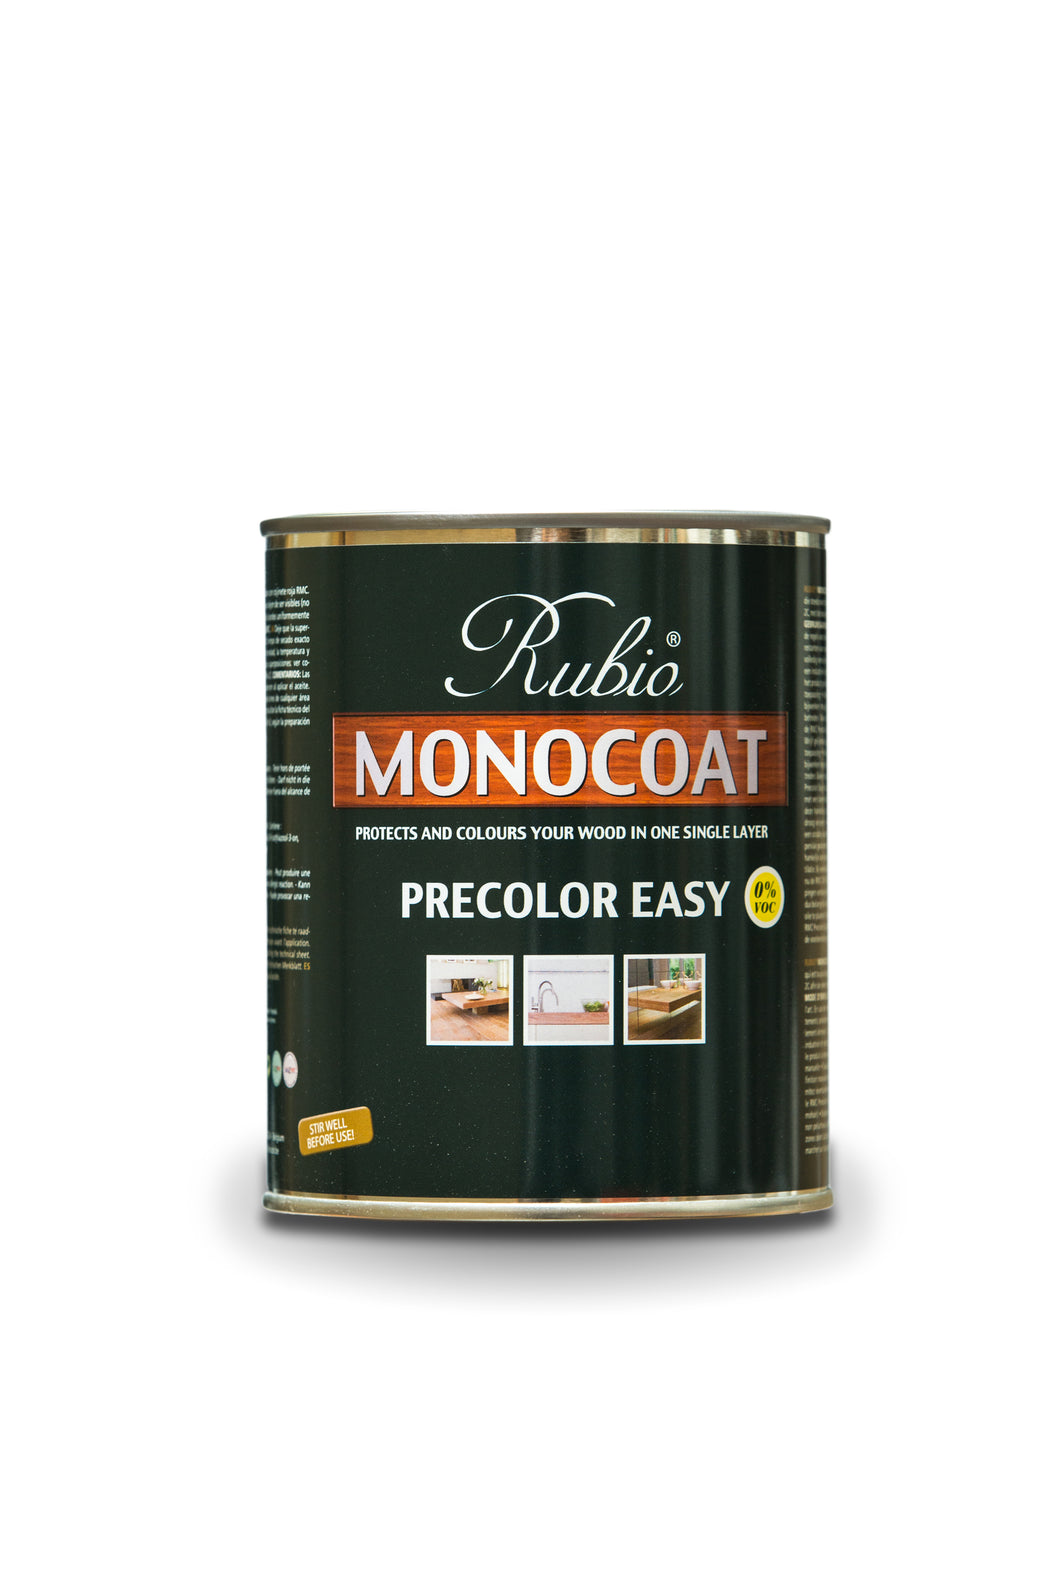 Rubio Monocoat Wood Stain Pre-Color Easy Alpaca White